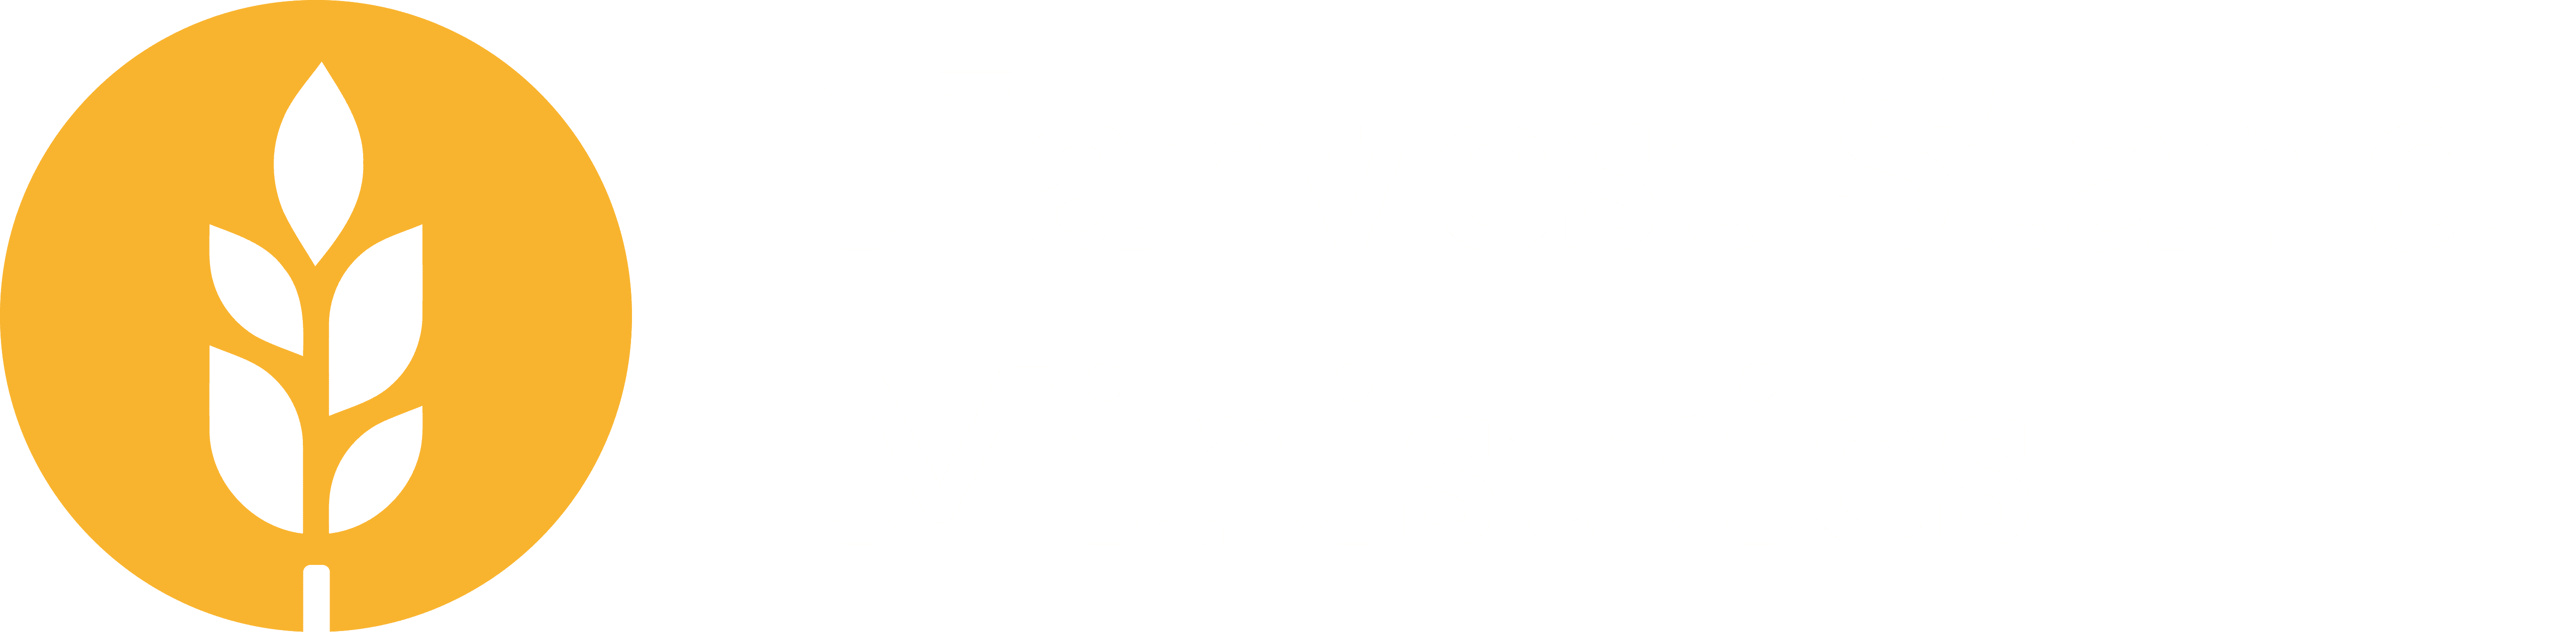 His Harvest Stand